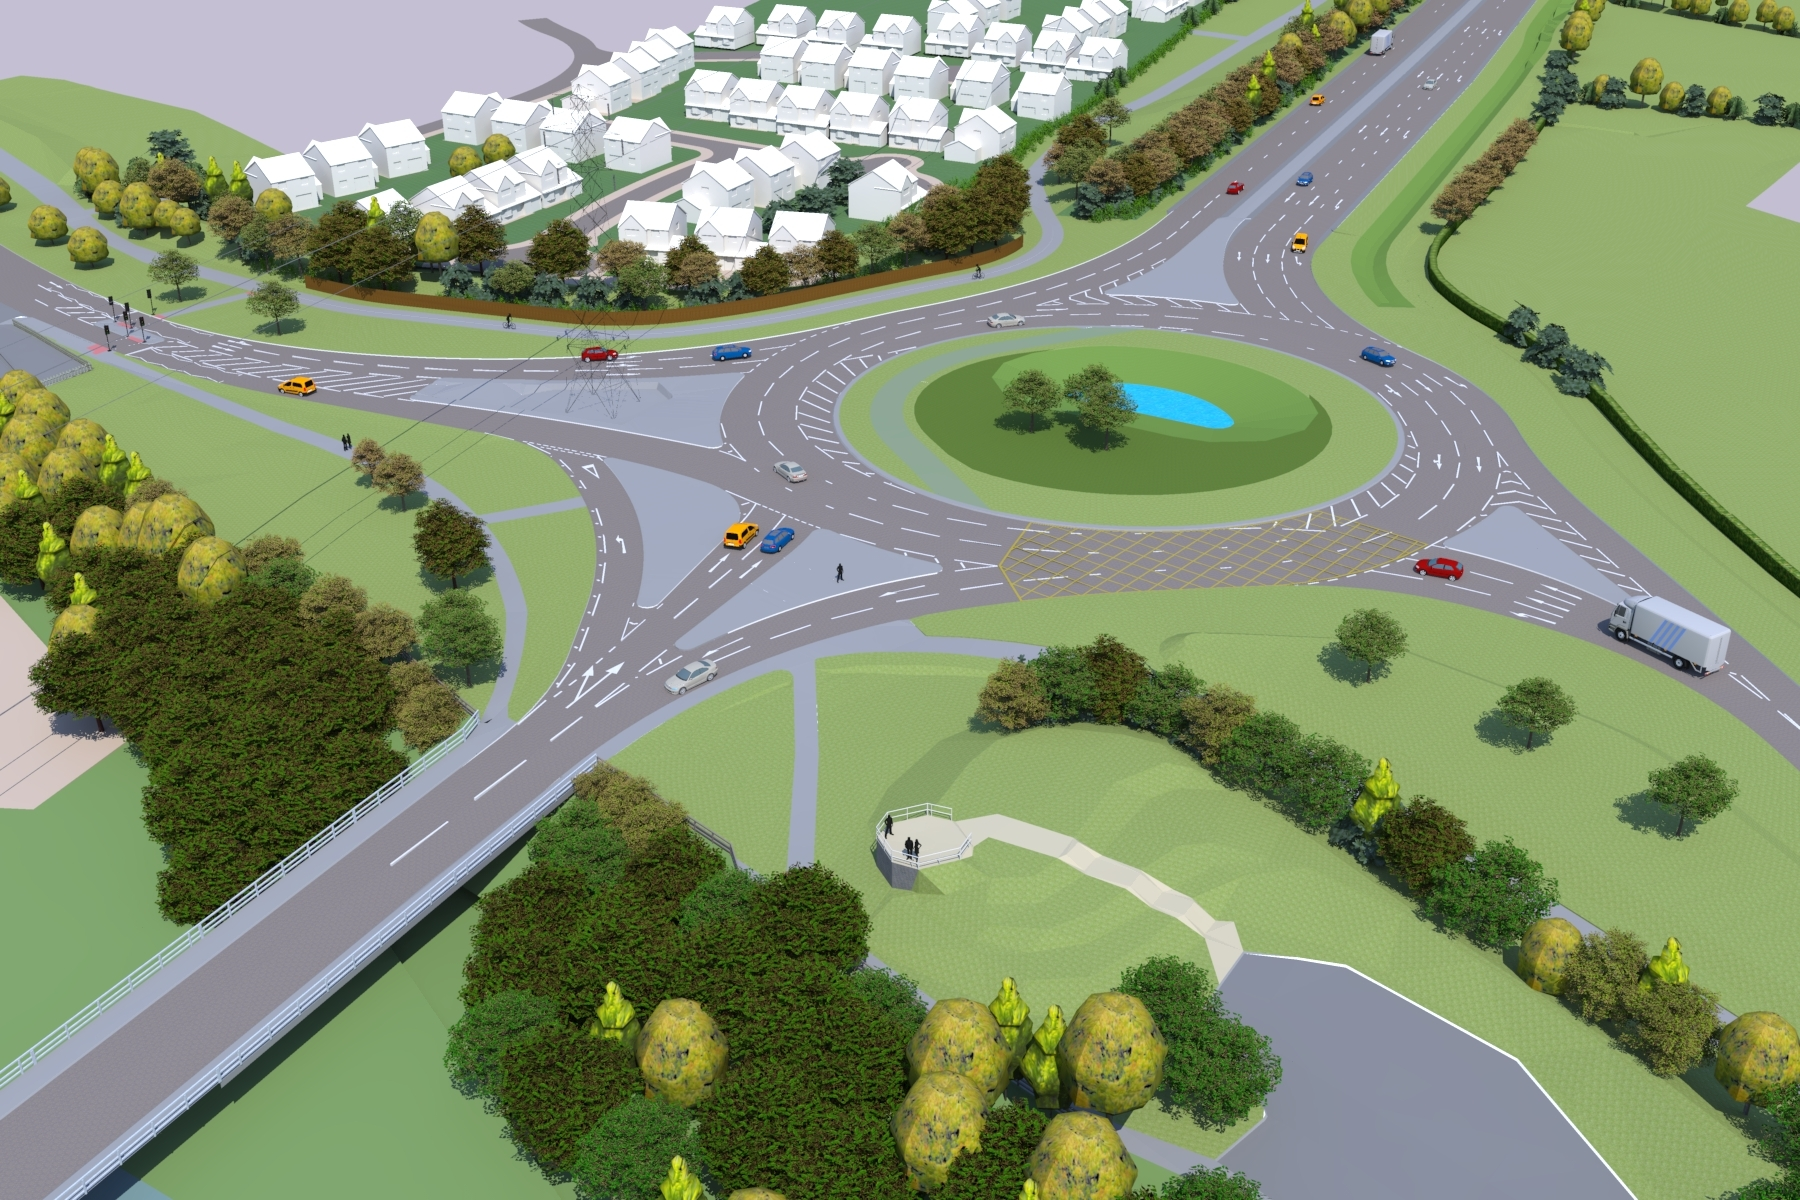 An artists impression of the new Ketch roundabout